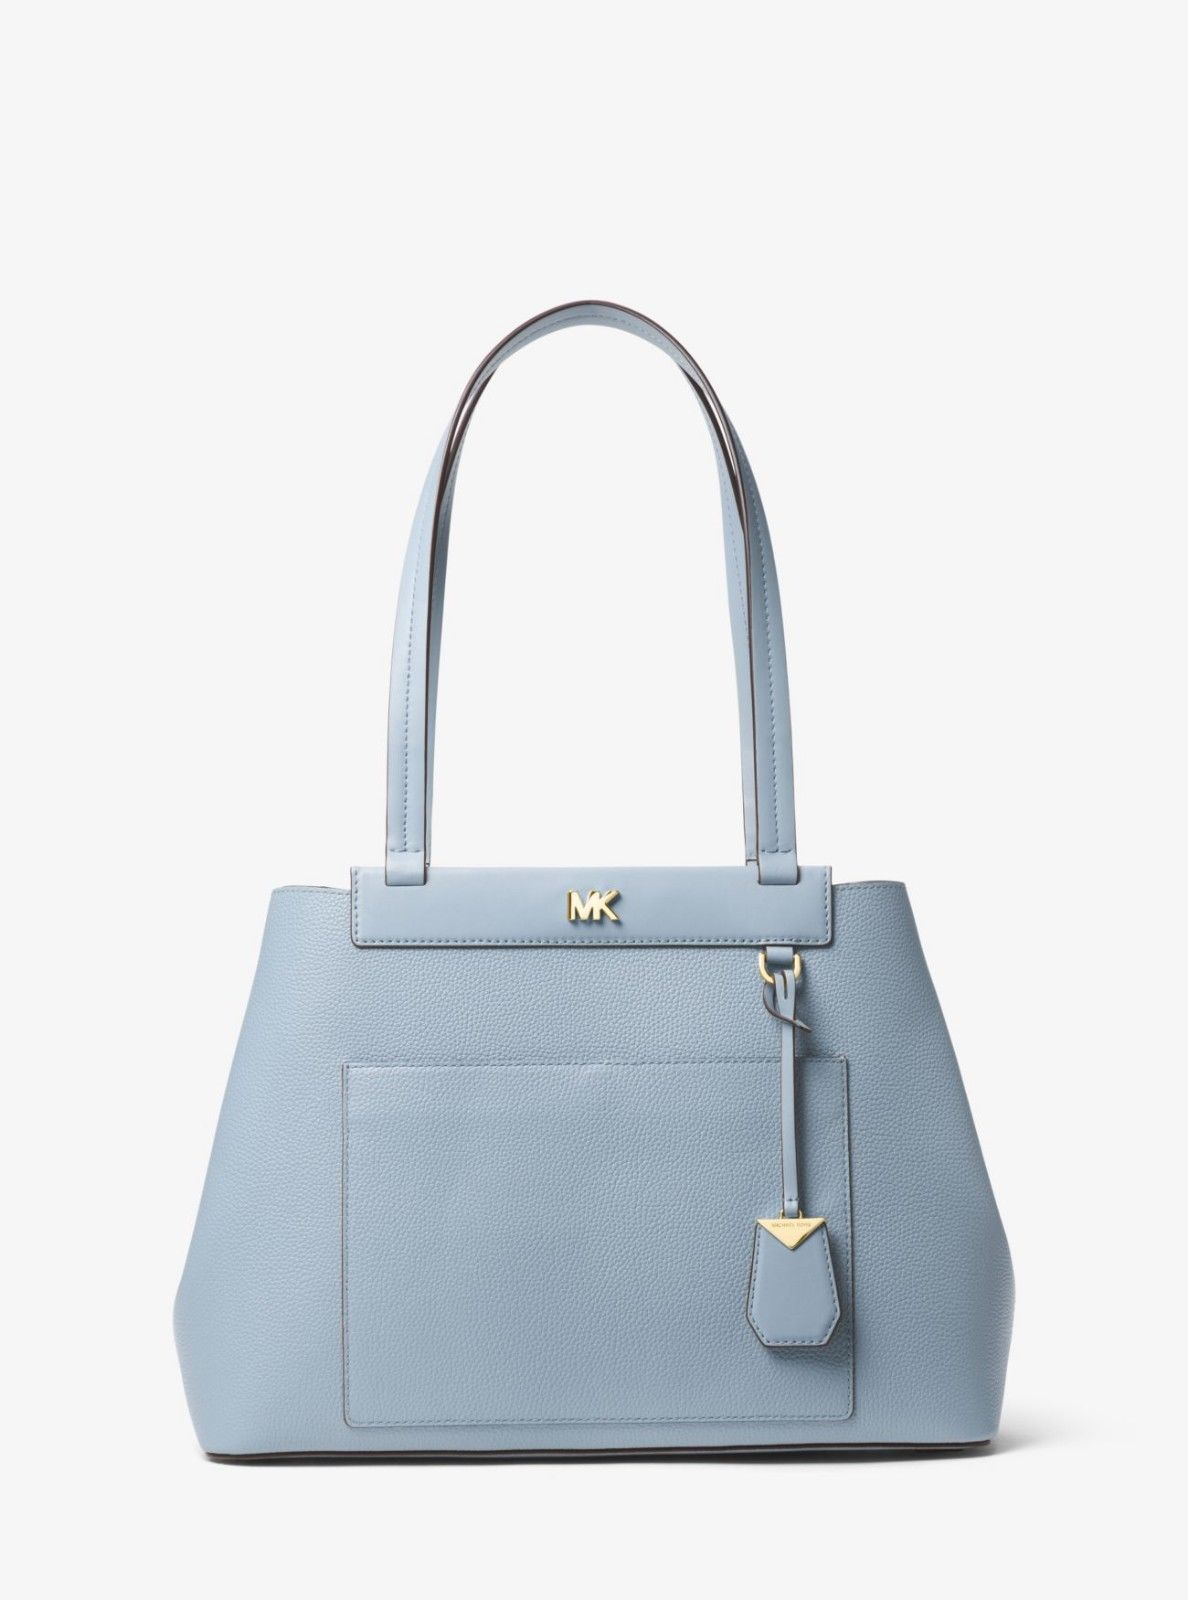 Michael Kors Meredith Medium Leather Tote Bag, Pale Blue handbag satchel NWT